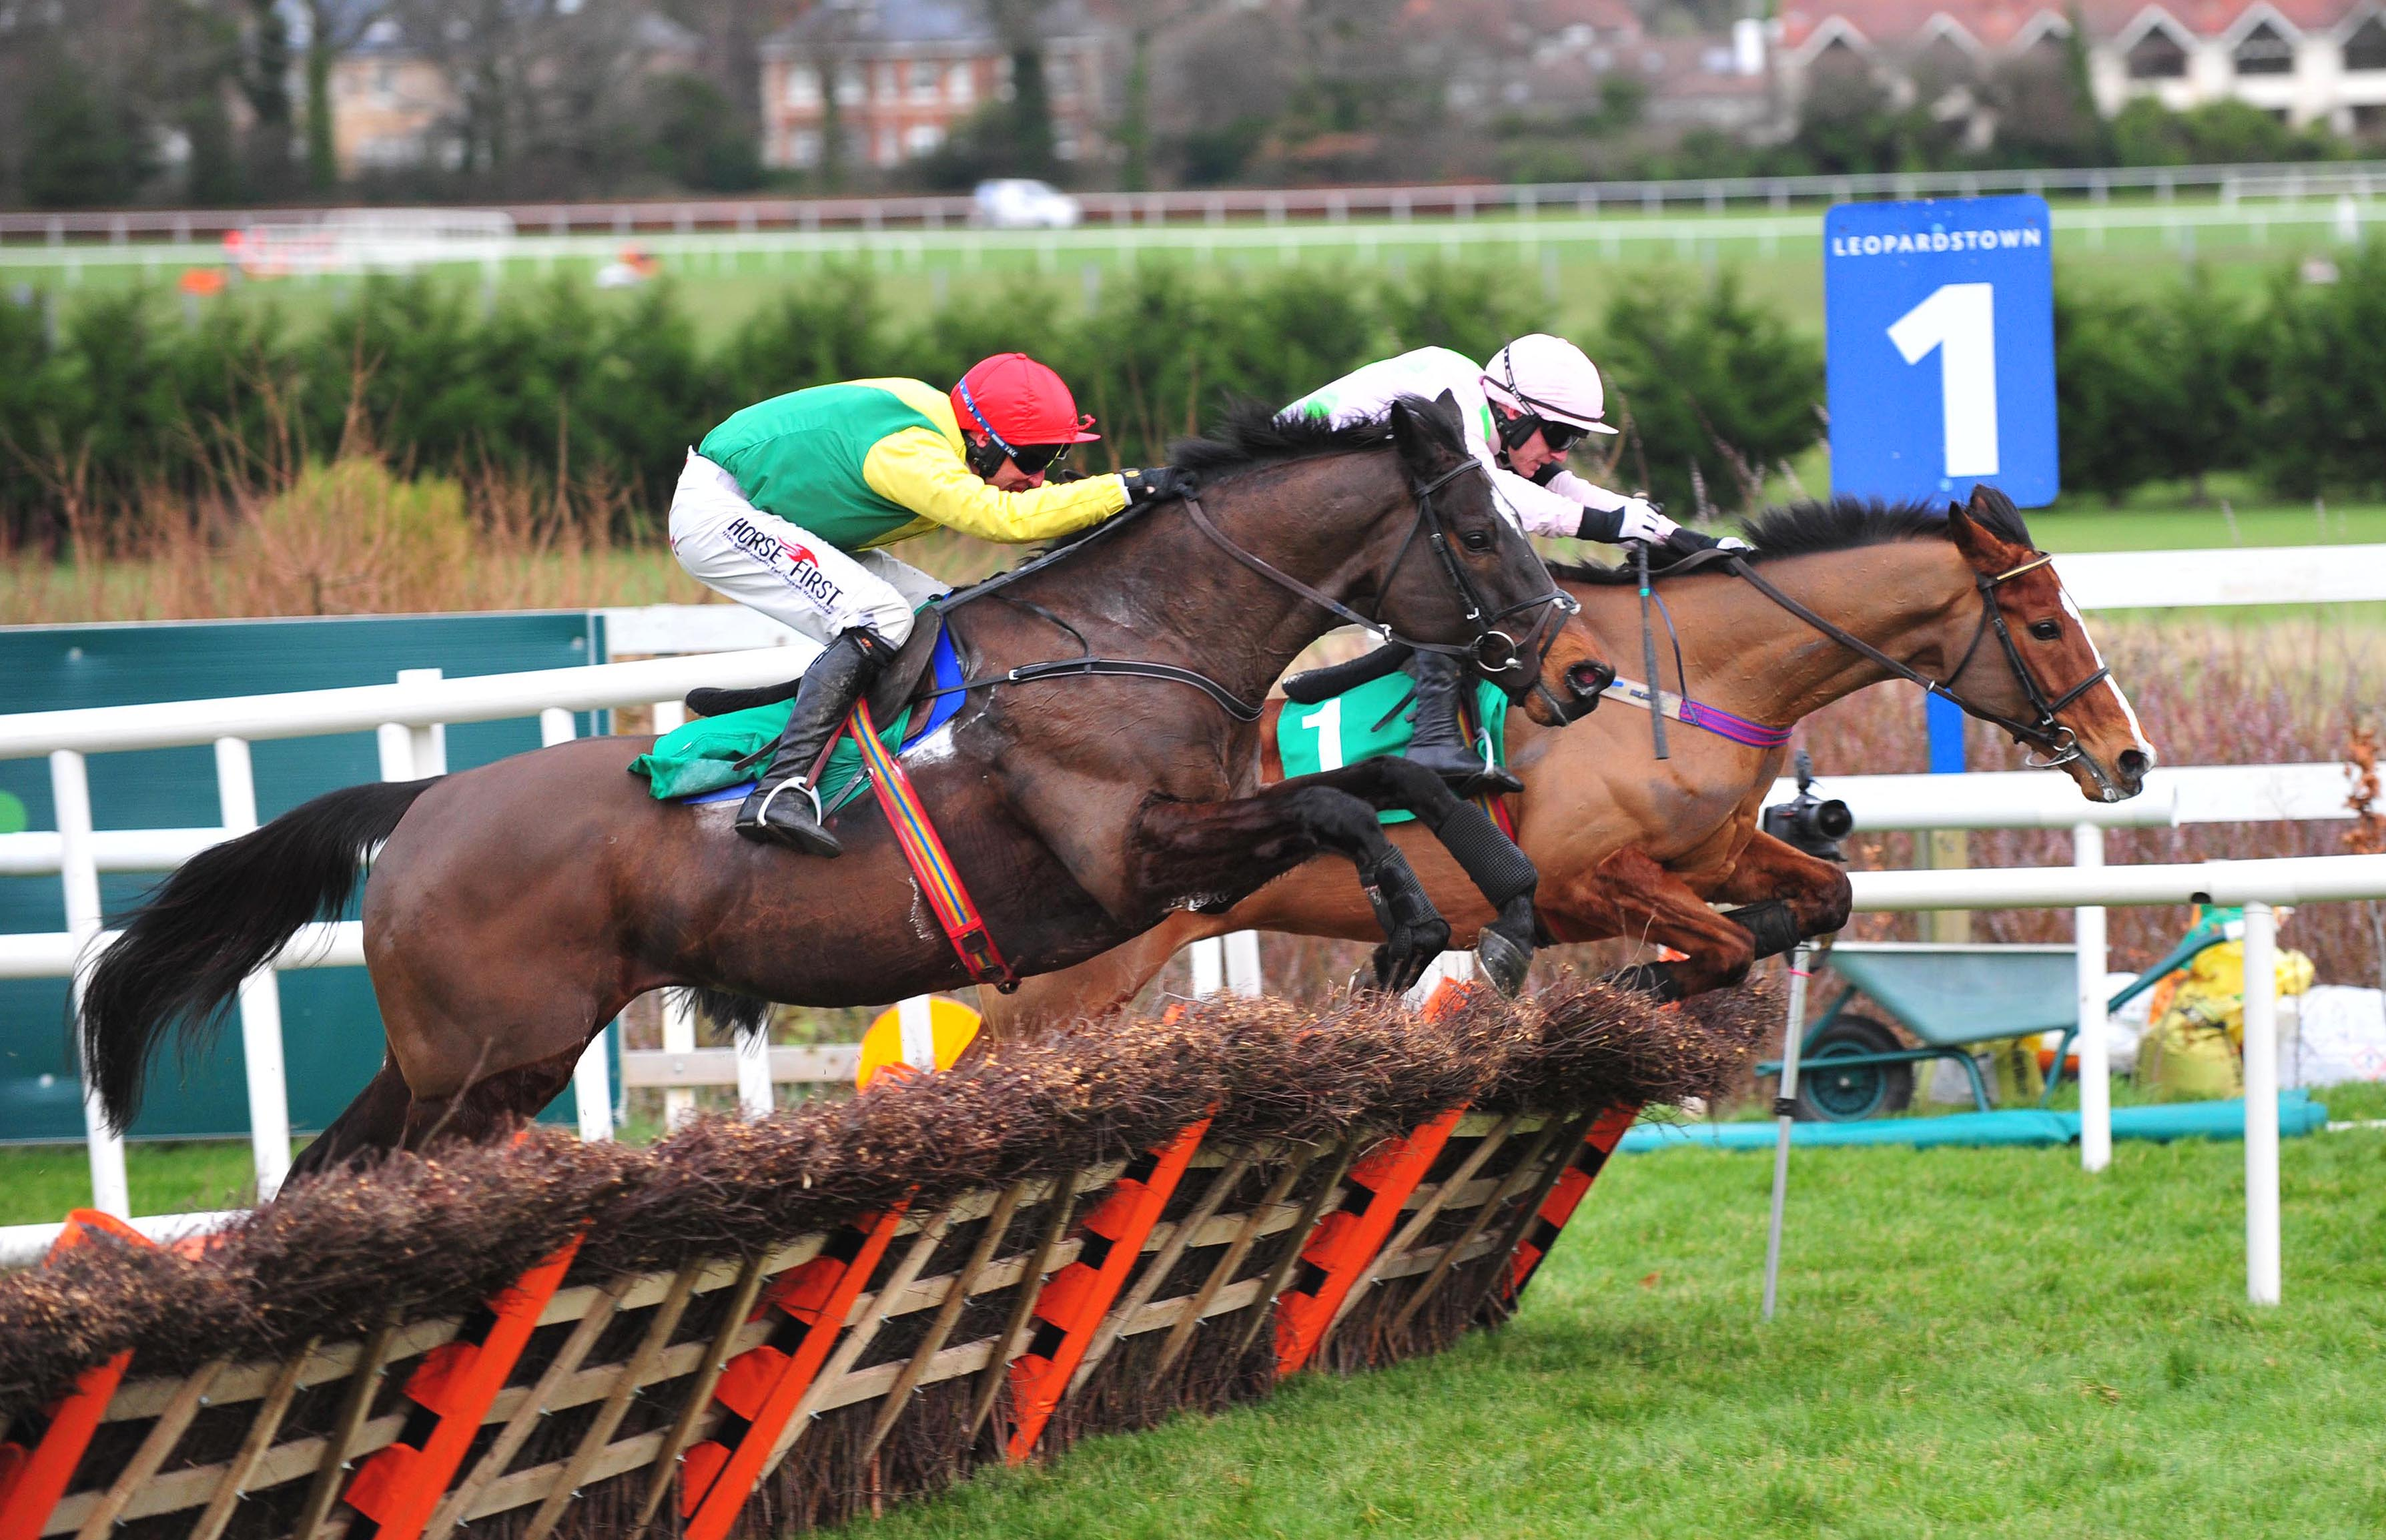 Runyon to Rattle off another win on the hill for Rothwell